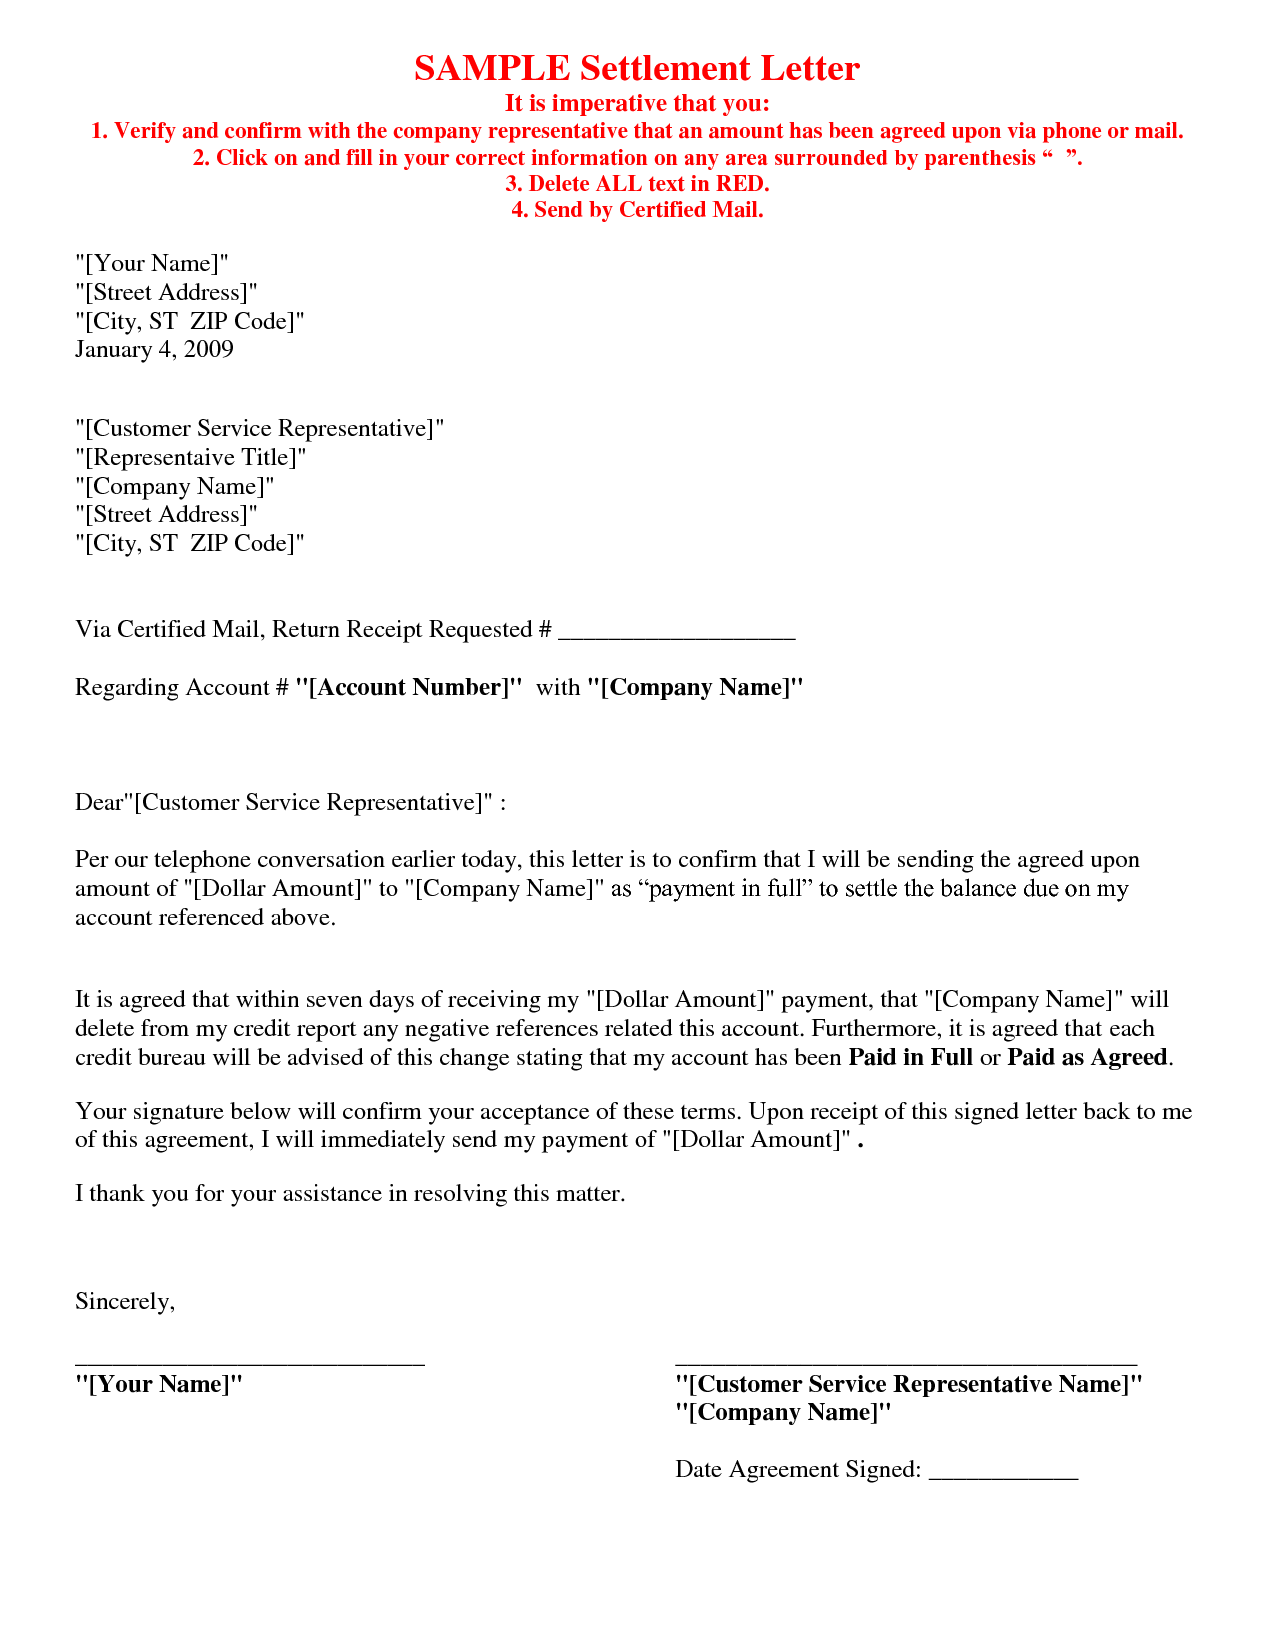 Picture 5 of 17 debt settlement agreement letter sample picture 5 of 17 debt settlement agreement letter sample spiritdancerdesigns Gallery